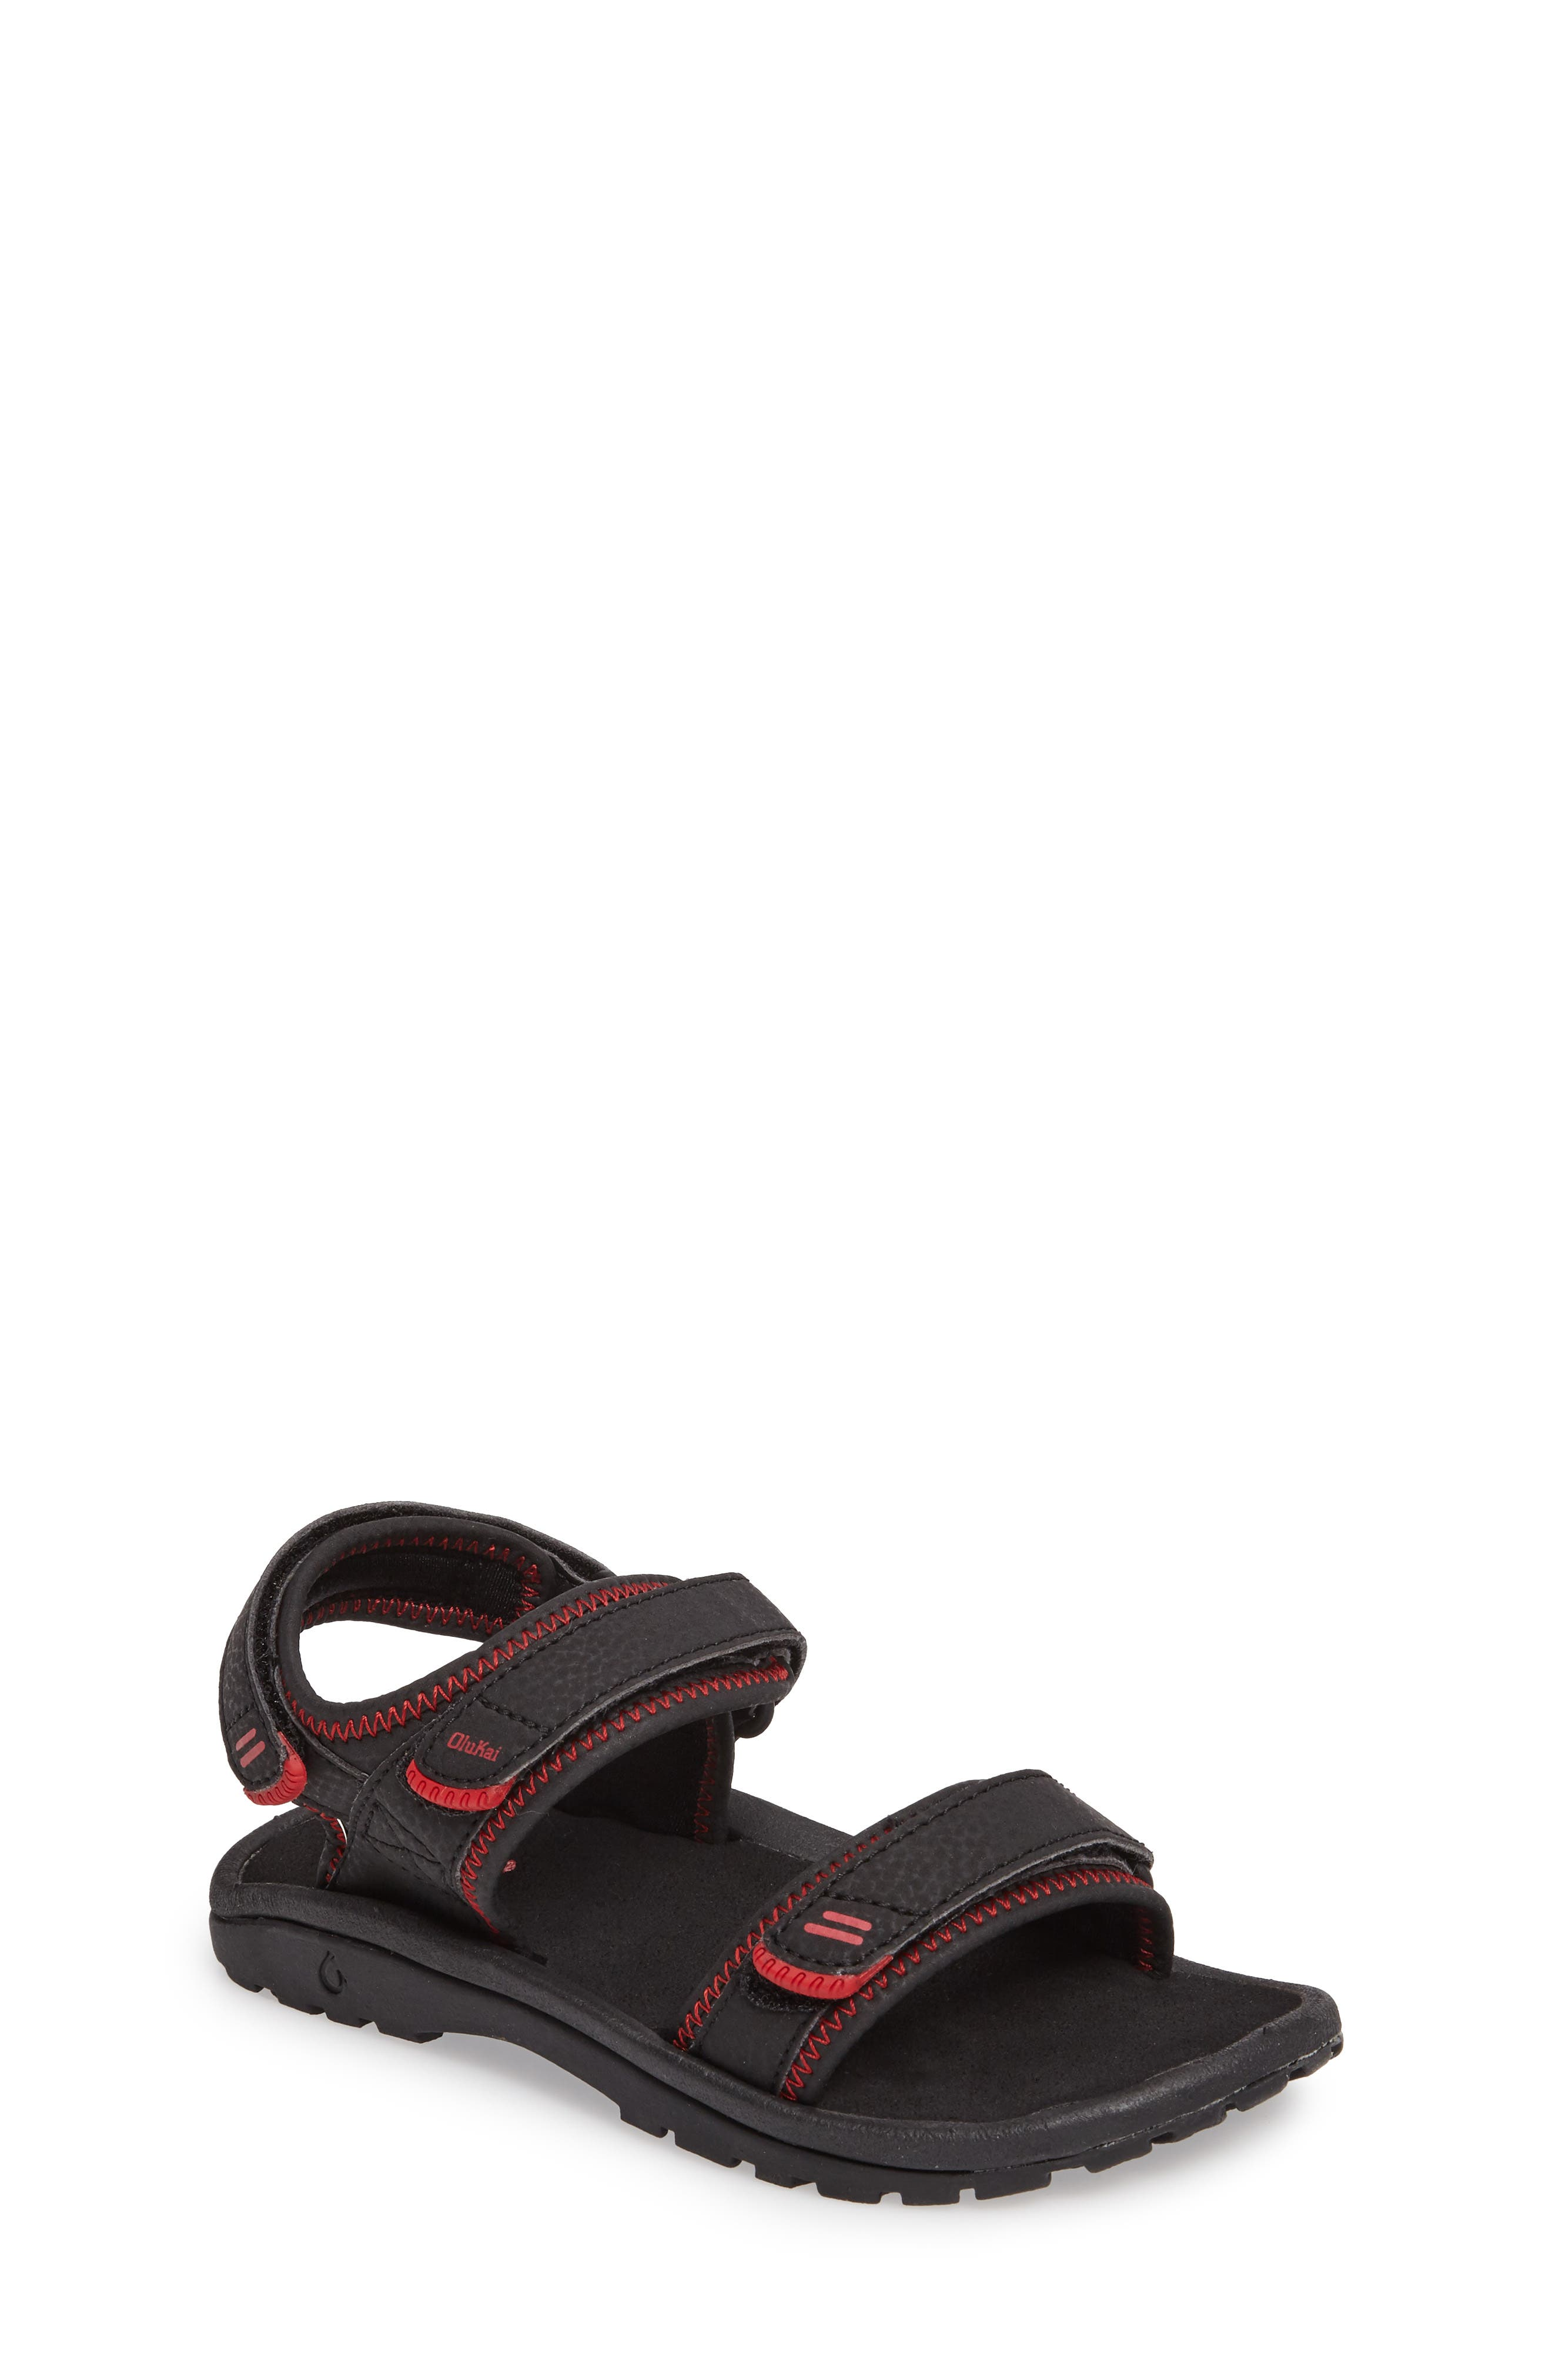 OluKai Pahu Sandal (Toddler, Little Kid & Big Kid)